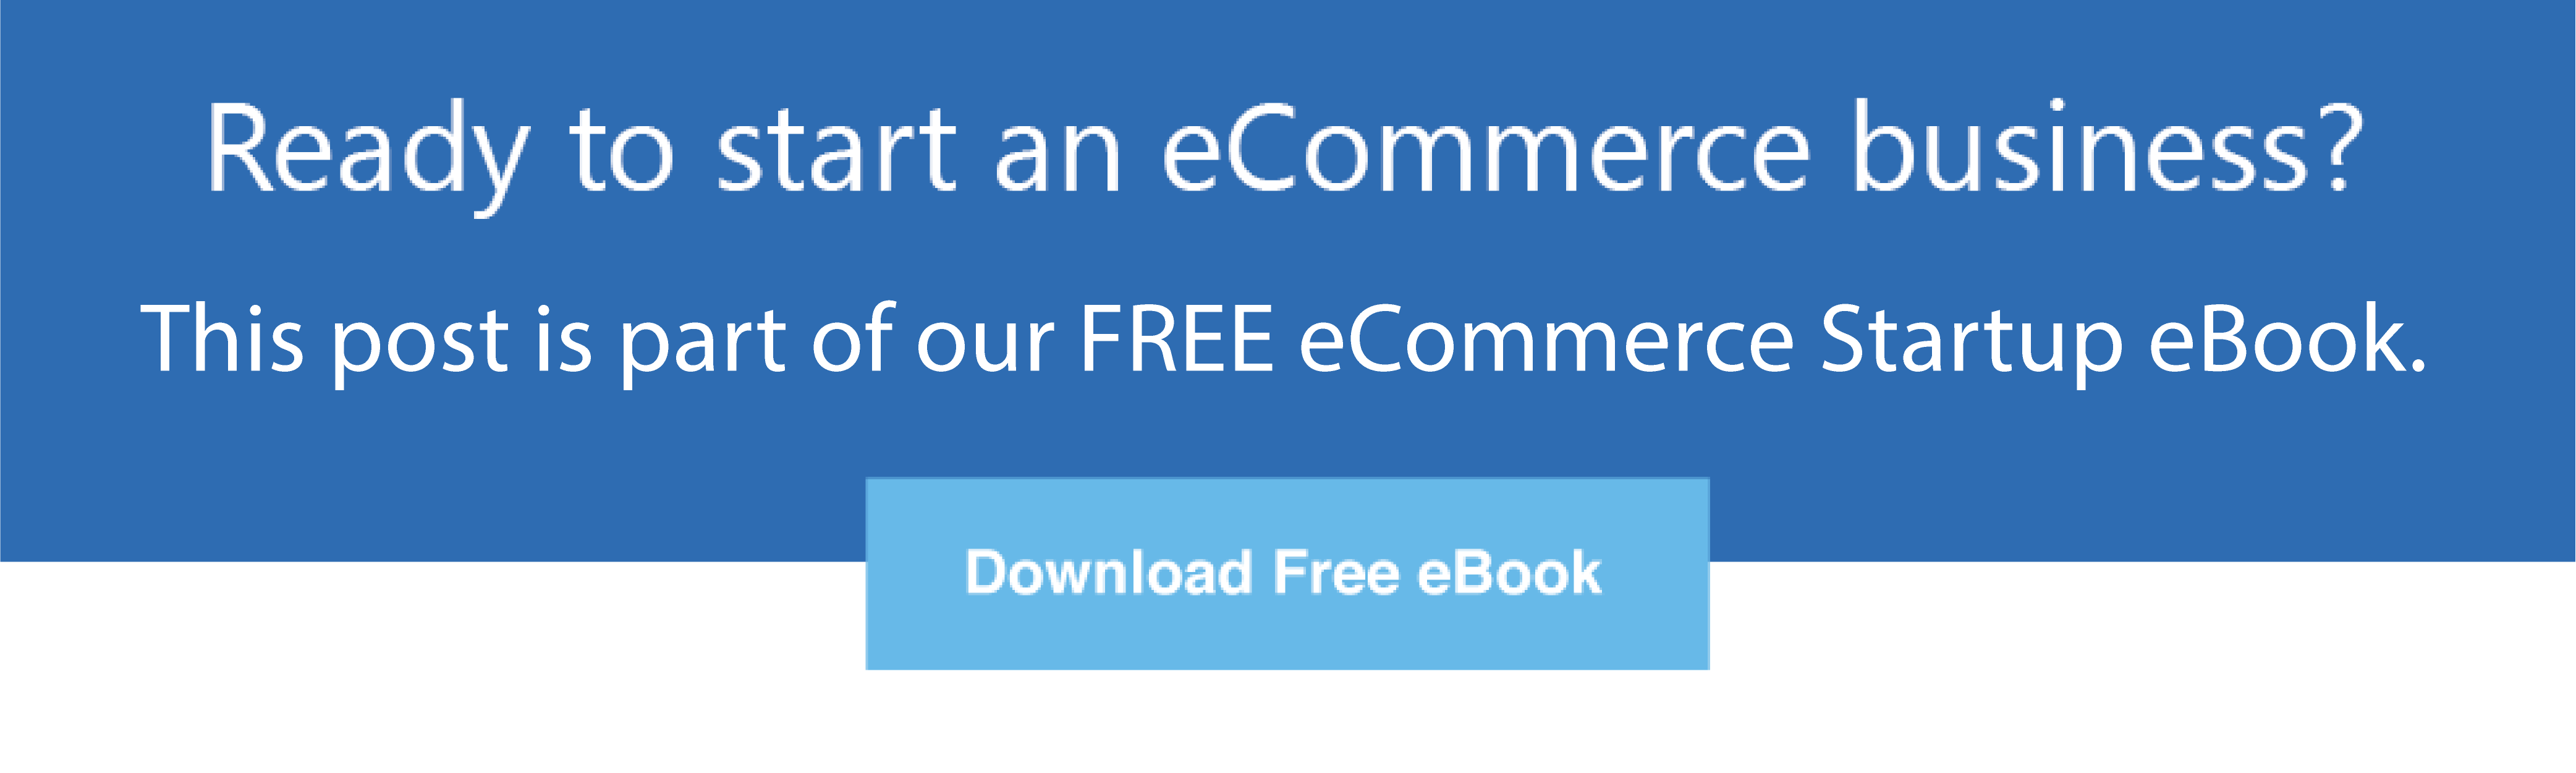 Download Our Free Starting eCommerce eBook